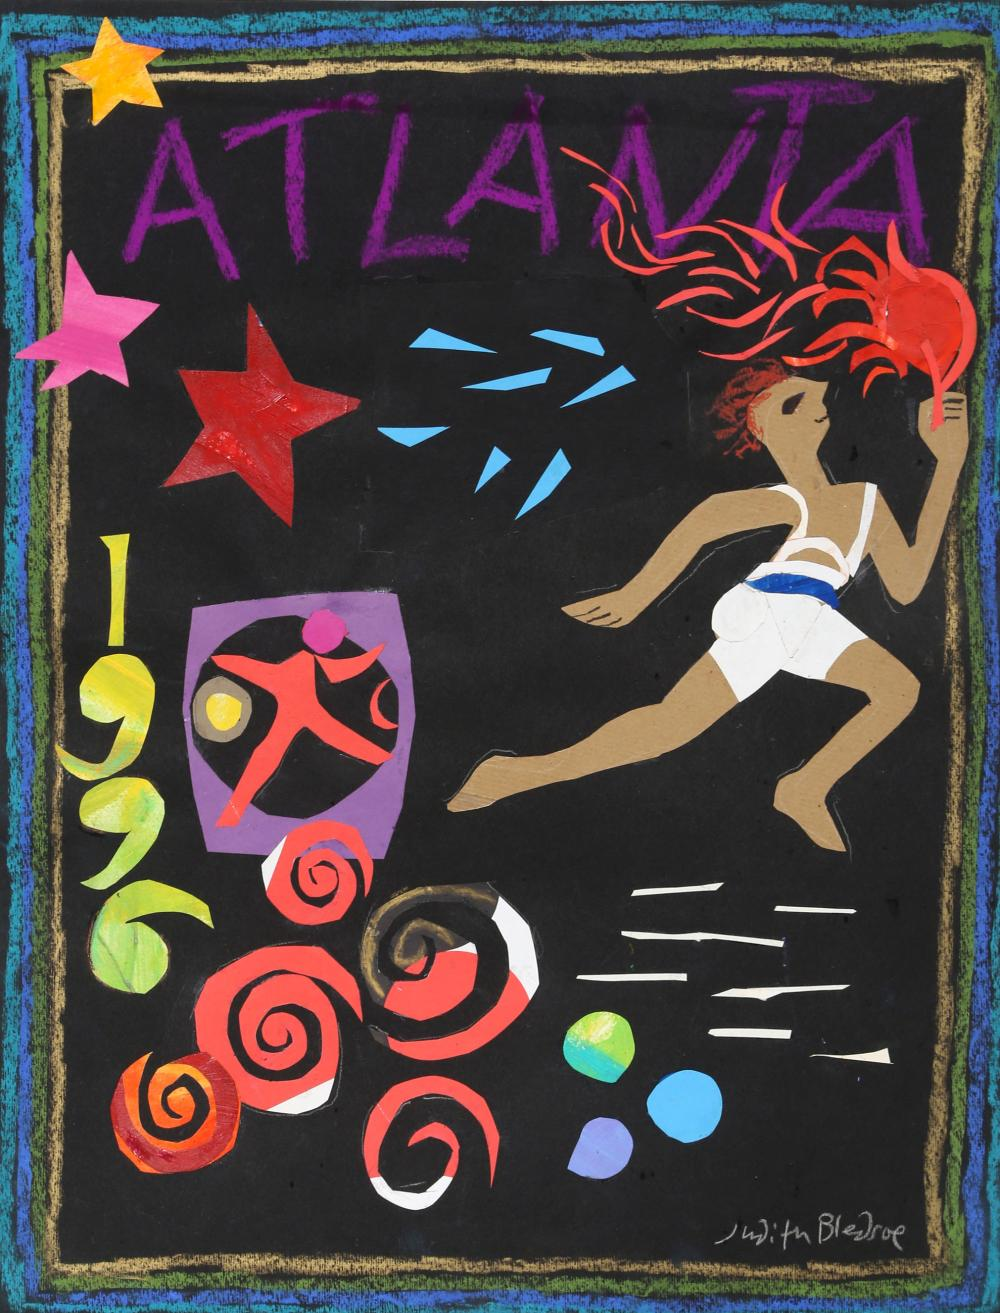 Judith Bledsoe, Atlanta Olympics - Runner with Torch, Pastel and Collage on Paper